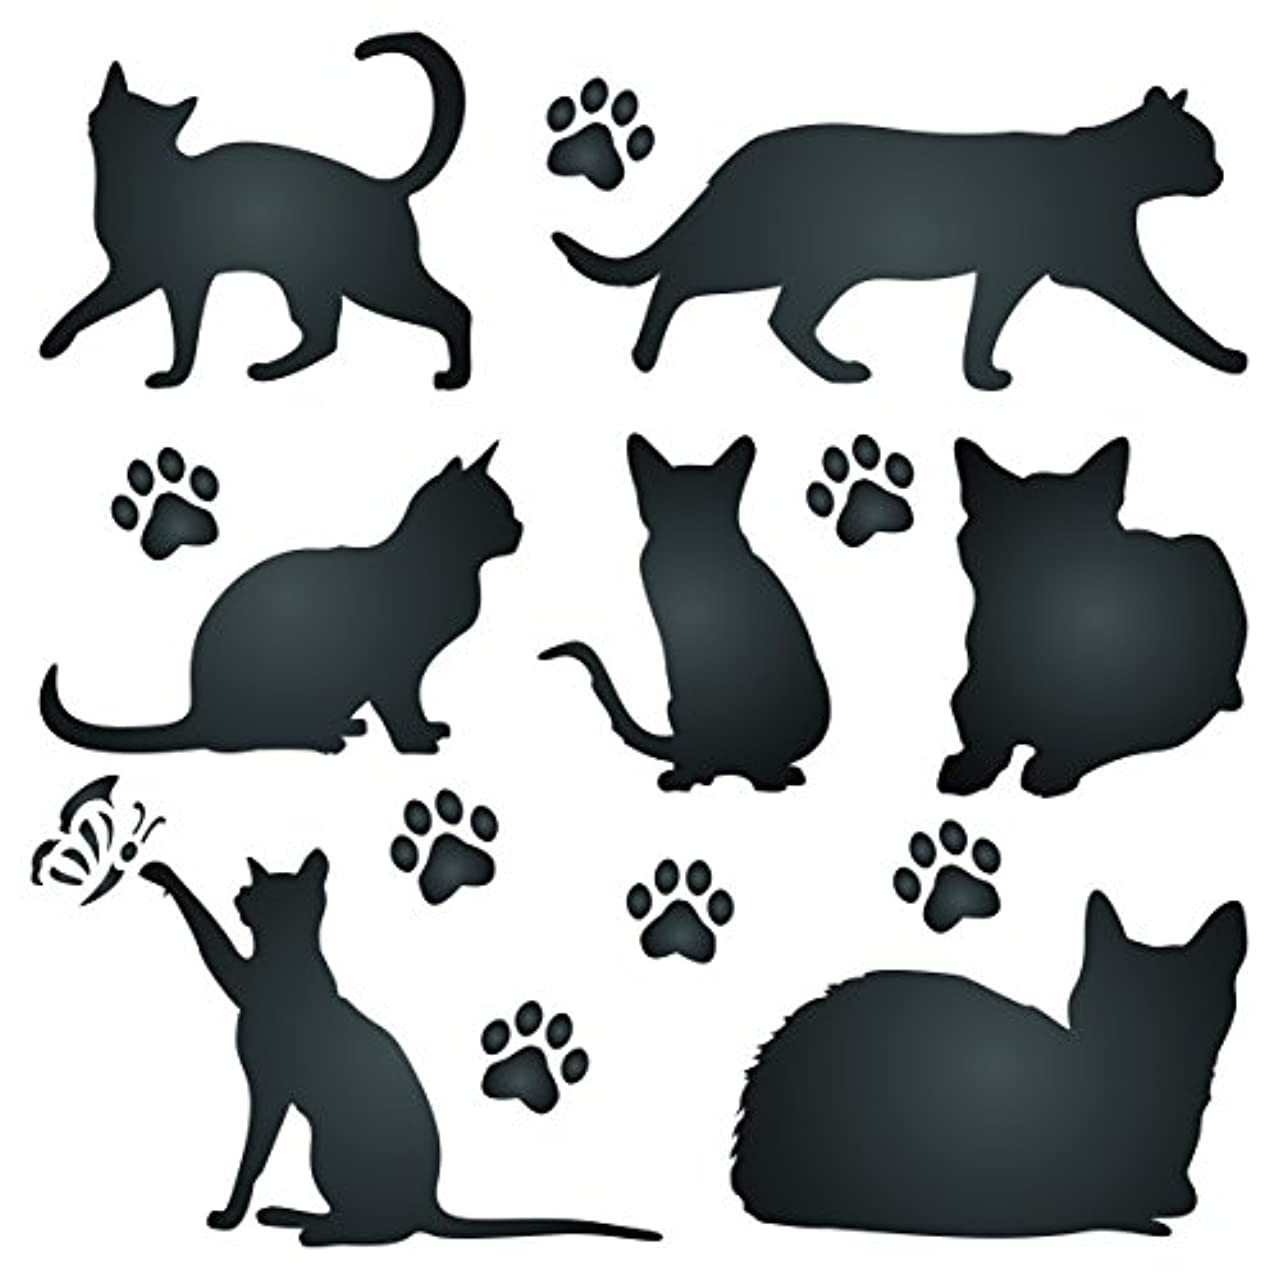 Cat Silhouette Stencil - 6.5 x 6.5 inch (M) - Reusable Pet Friend Animal Wall Stencil Template - Use on Paper Projects Scrapbook Journal Walls Floors Fabric Furniture Glass Wood etc.